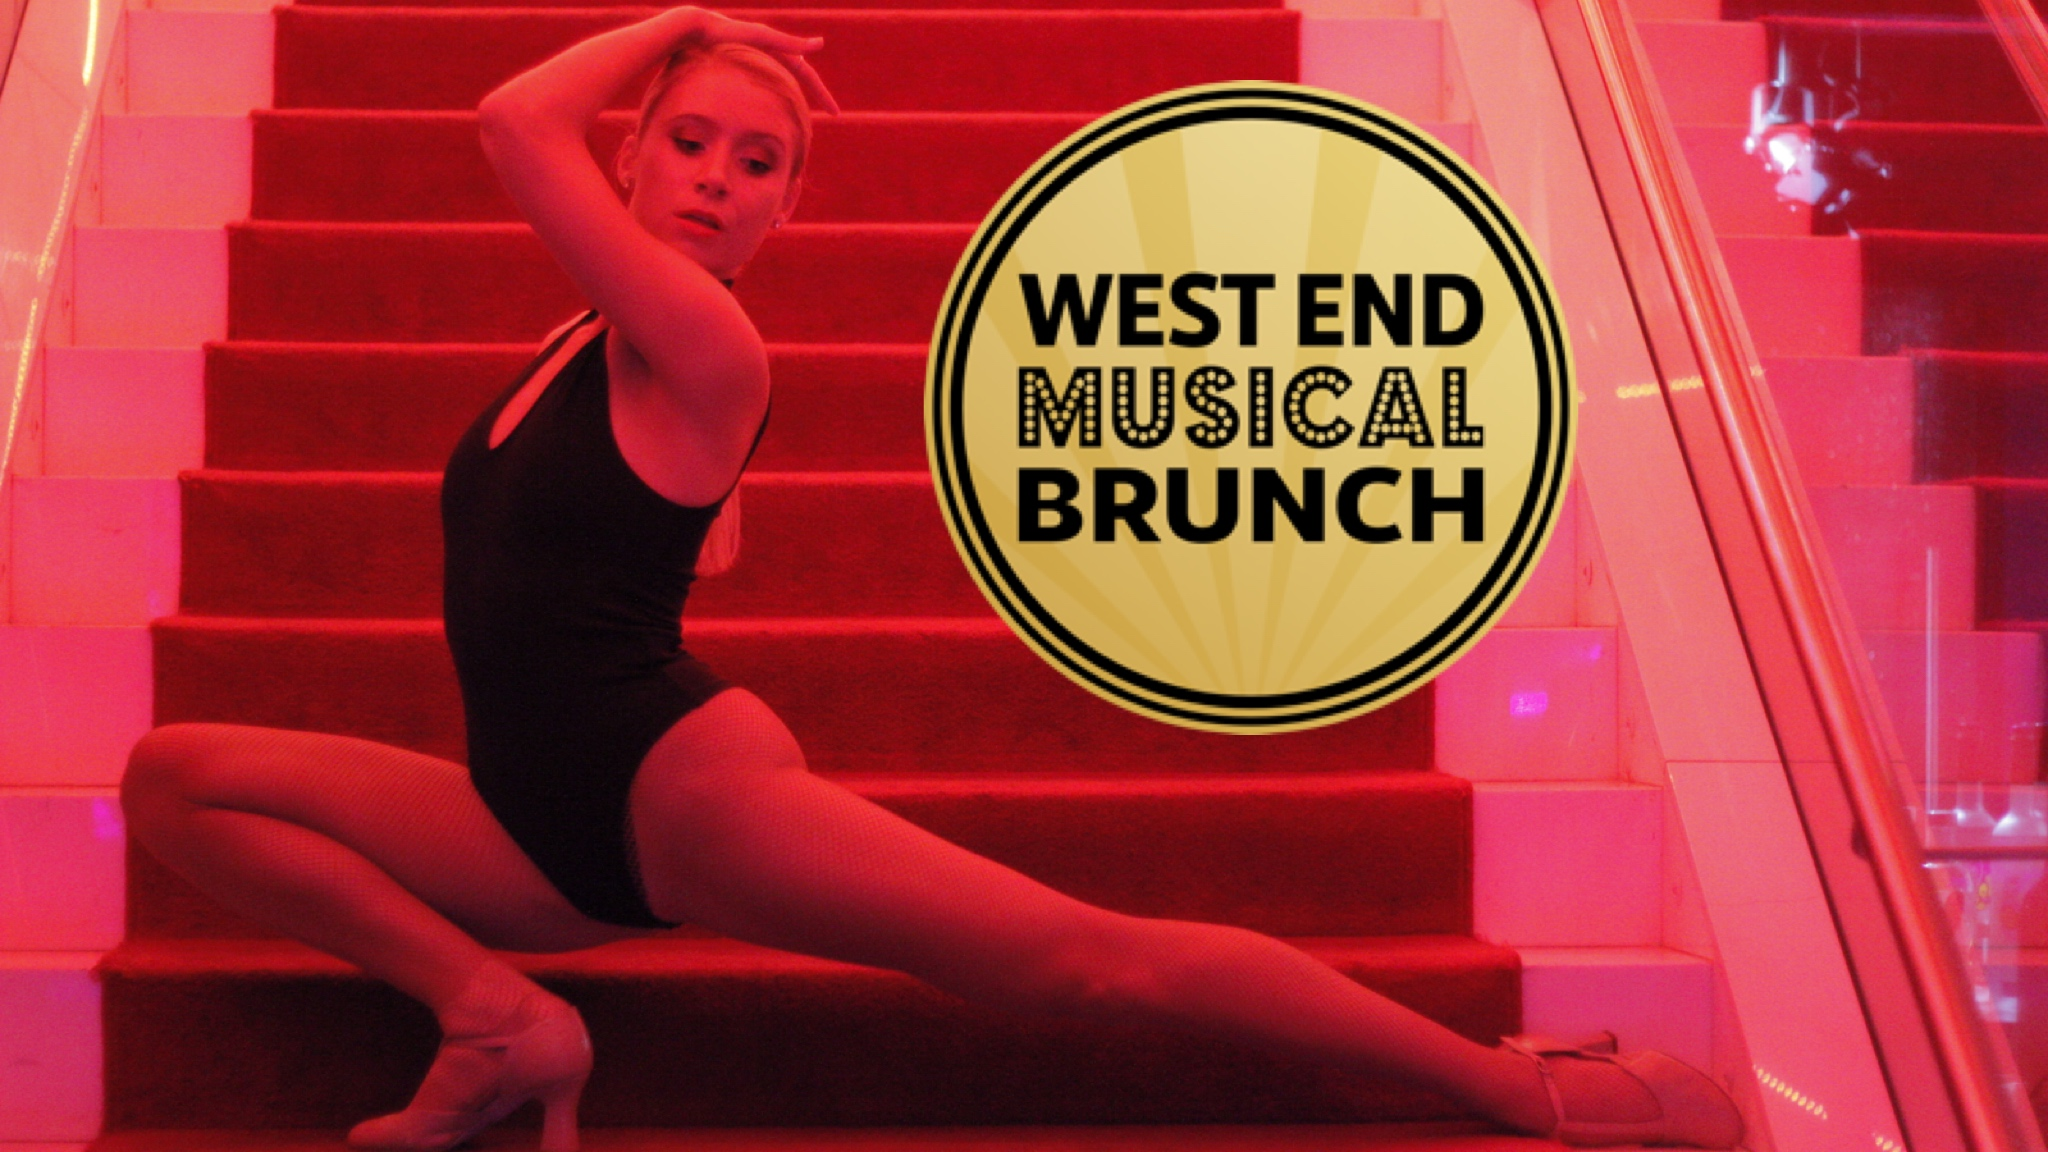 WEST END MUSICAL BRUNCH - HALLOWEEN SPECIAL